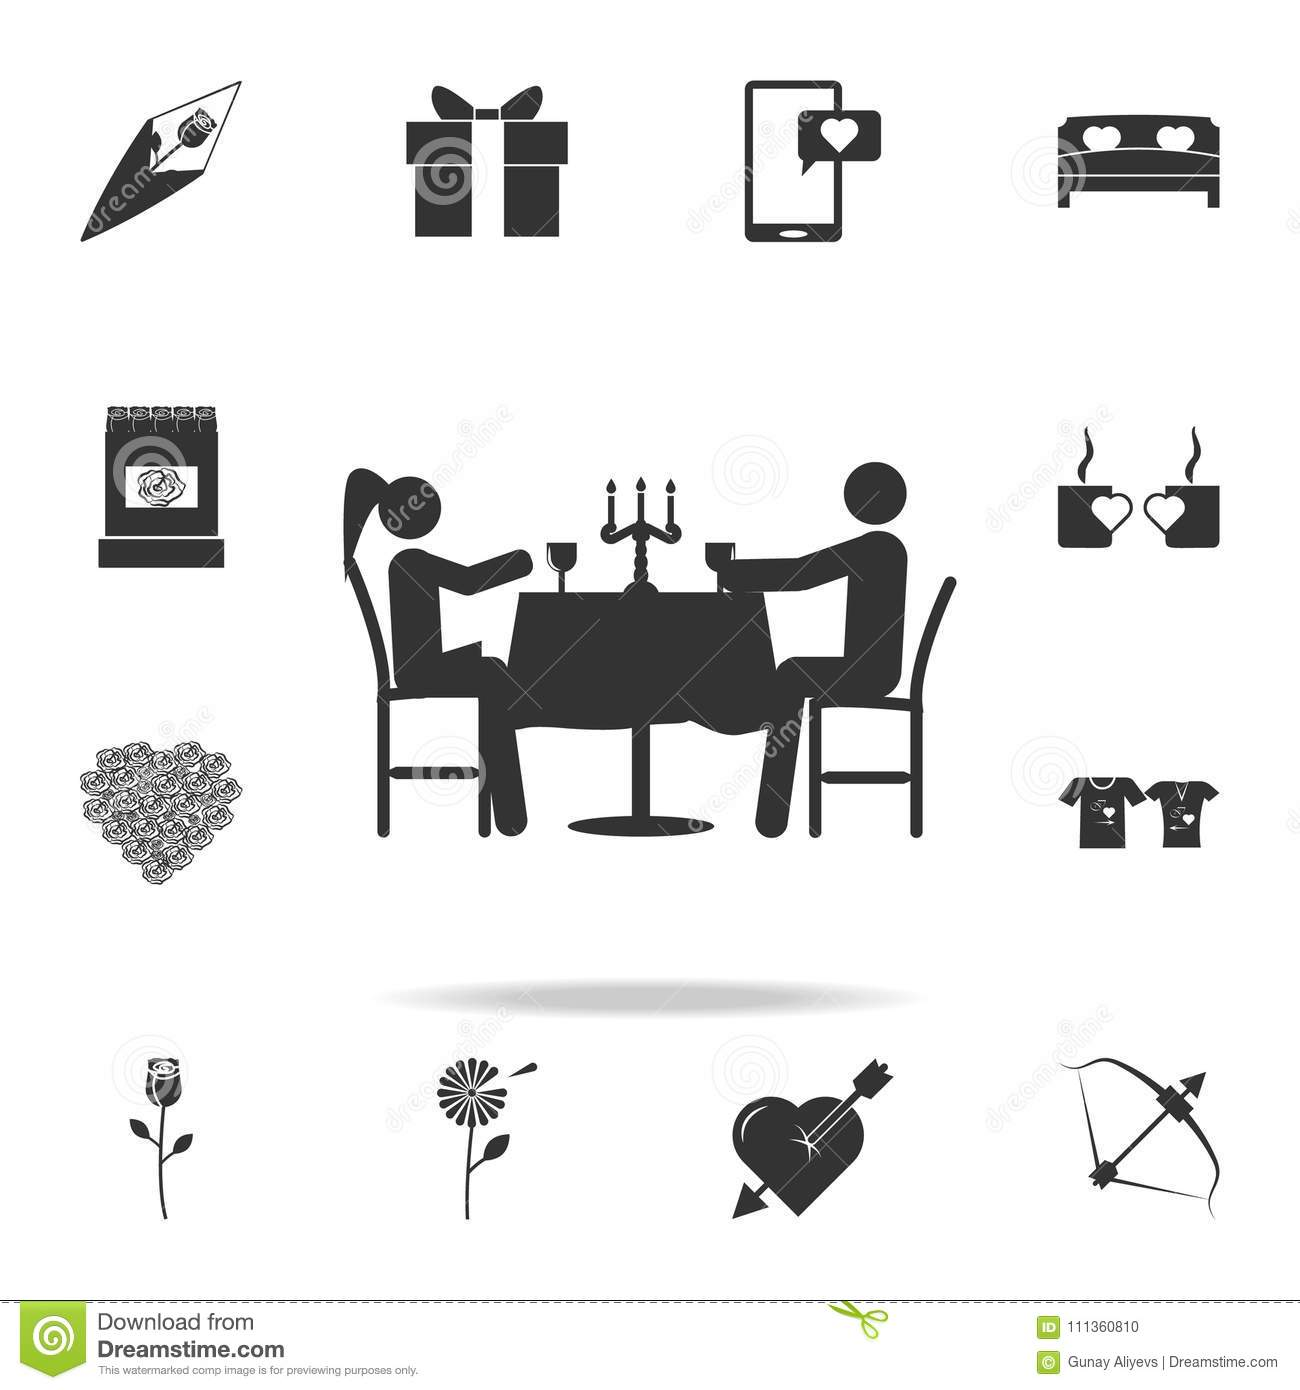 Romantic dinner for two icon. Detailed set of signs and elements of love icons. Premium quality graphic design. One of the collect